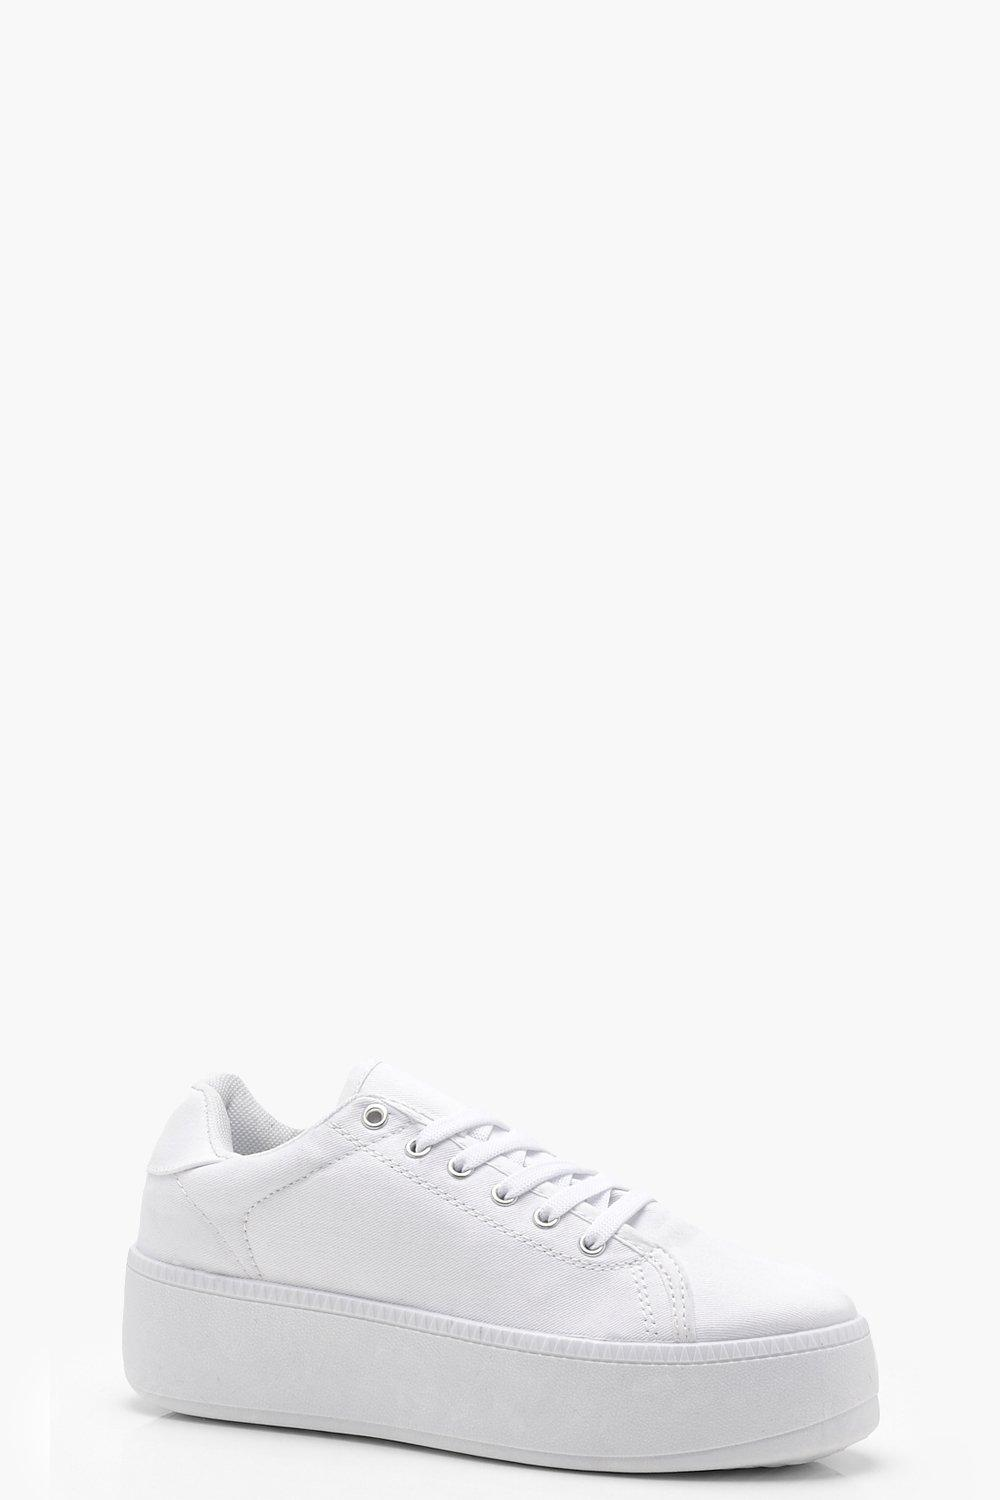 67daad5ccc3 Lace Up Platform Trainers. Hover to zoom